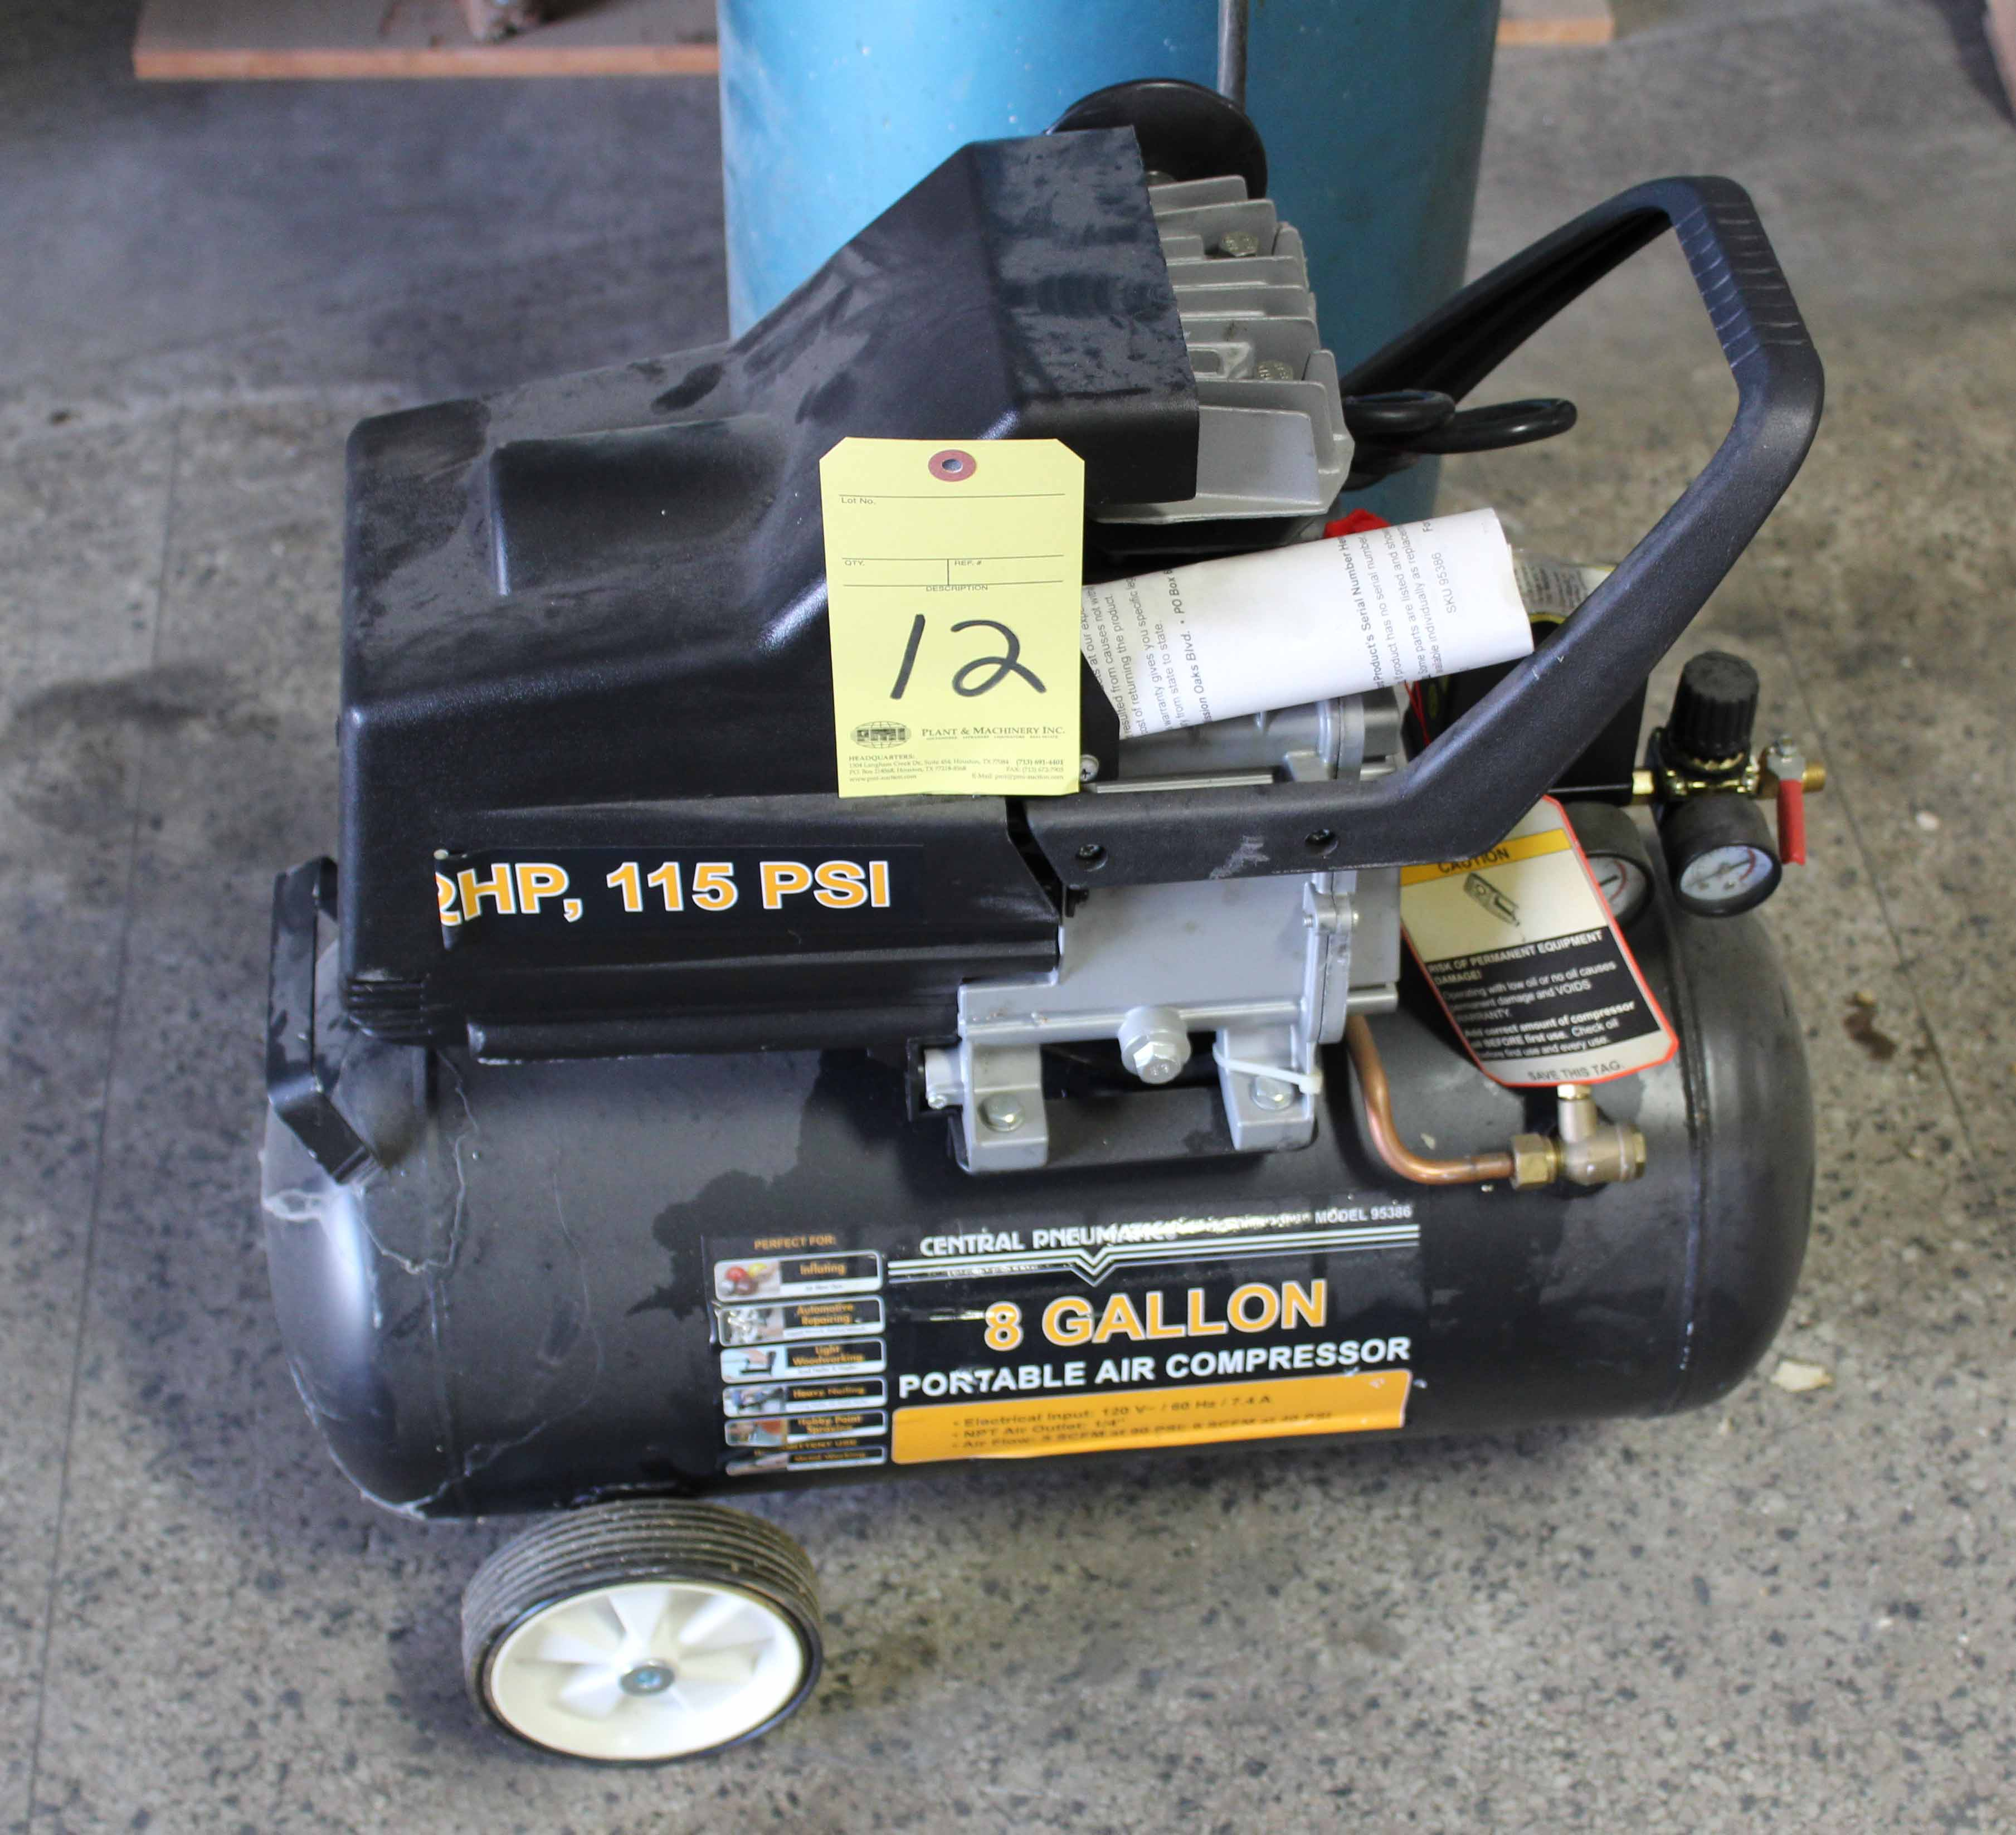 Lot 12 - PORTABLE AIR COMPRESSOR, CENTRAL PNEUMATIC, elec. pwrd., 2 HP motor, 8 gal. horiz. tank